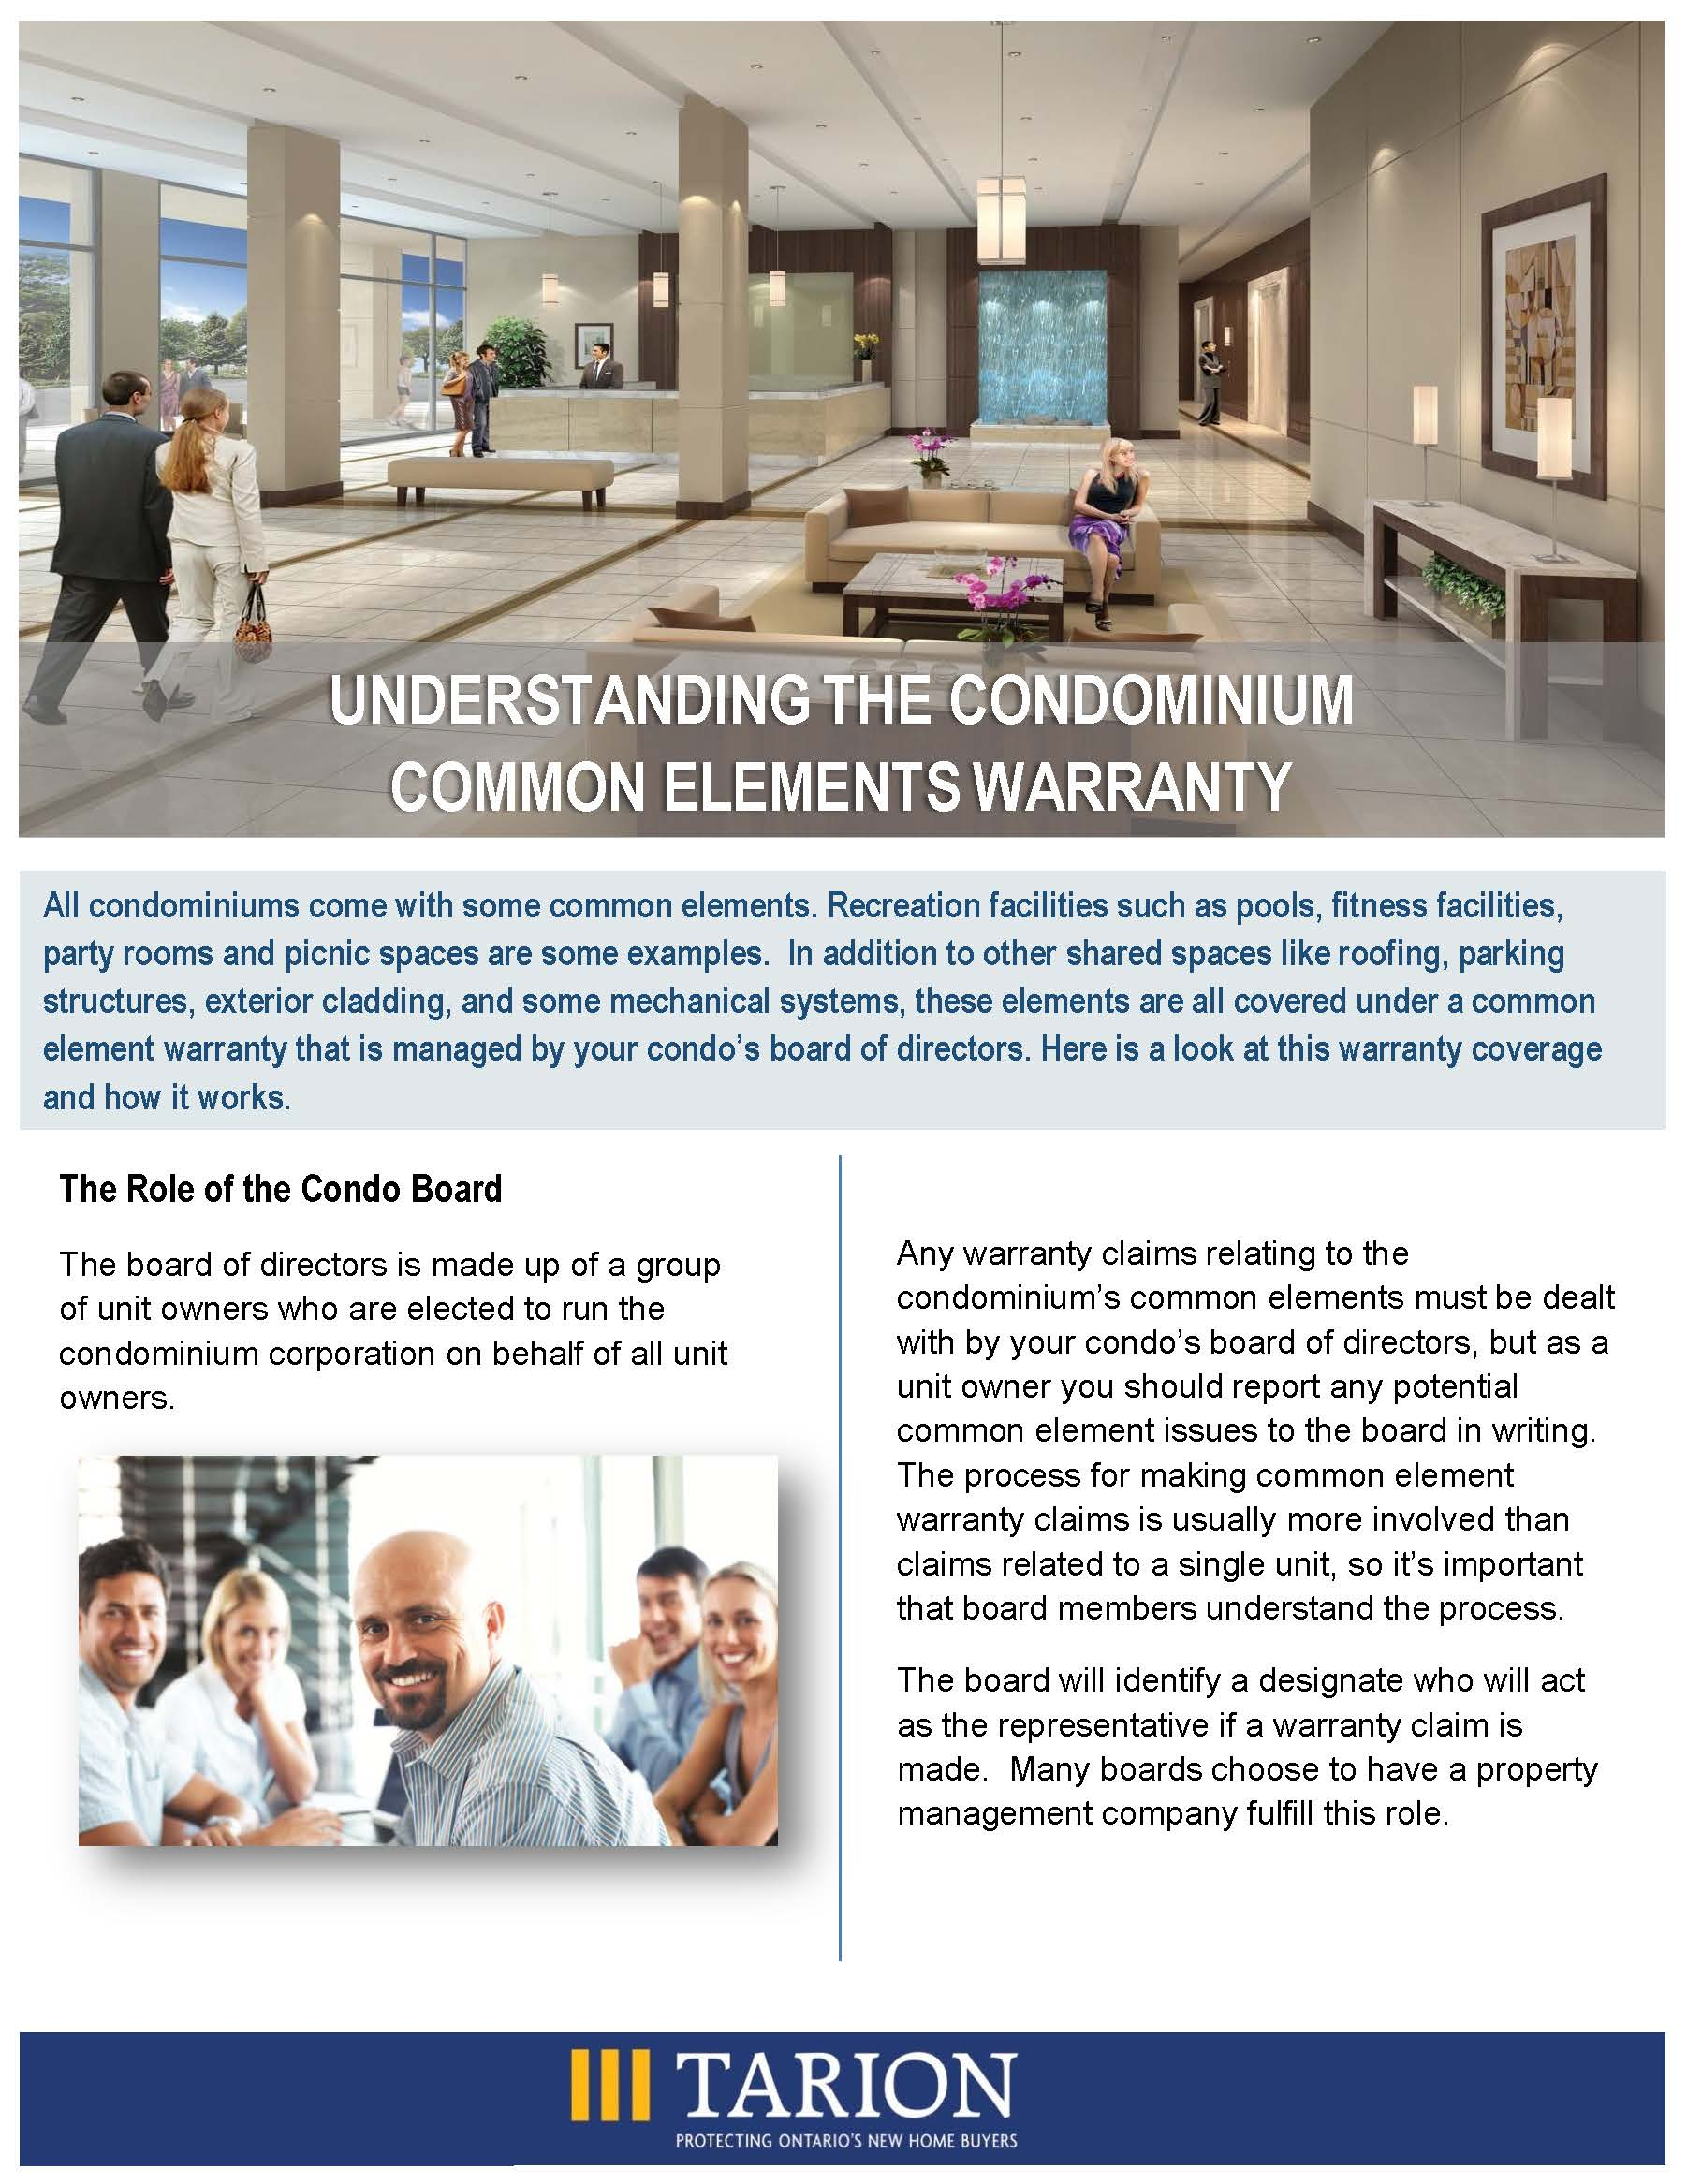 Understanding the Condominium Common Elements Warranty